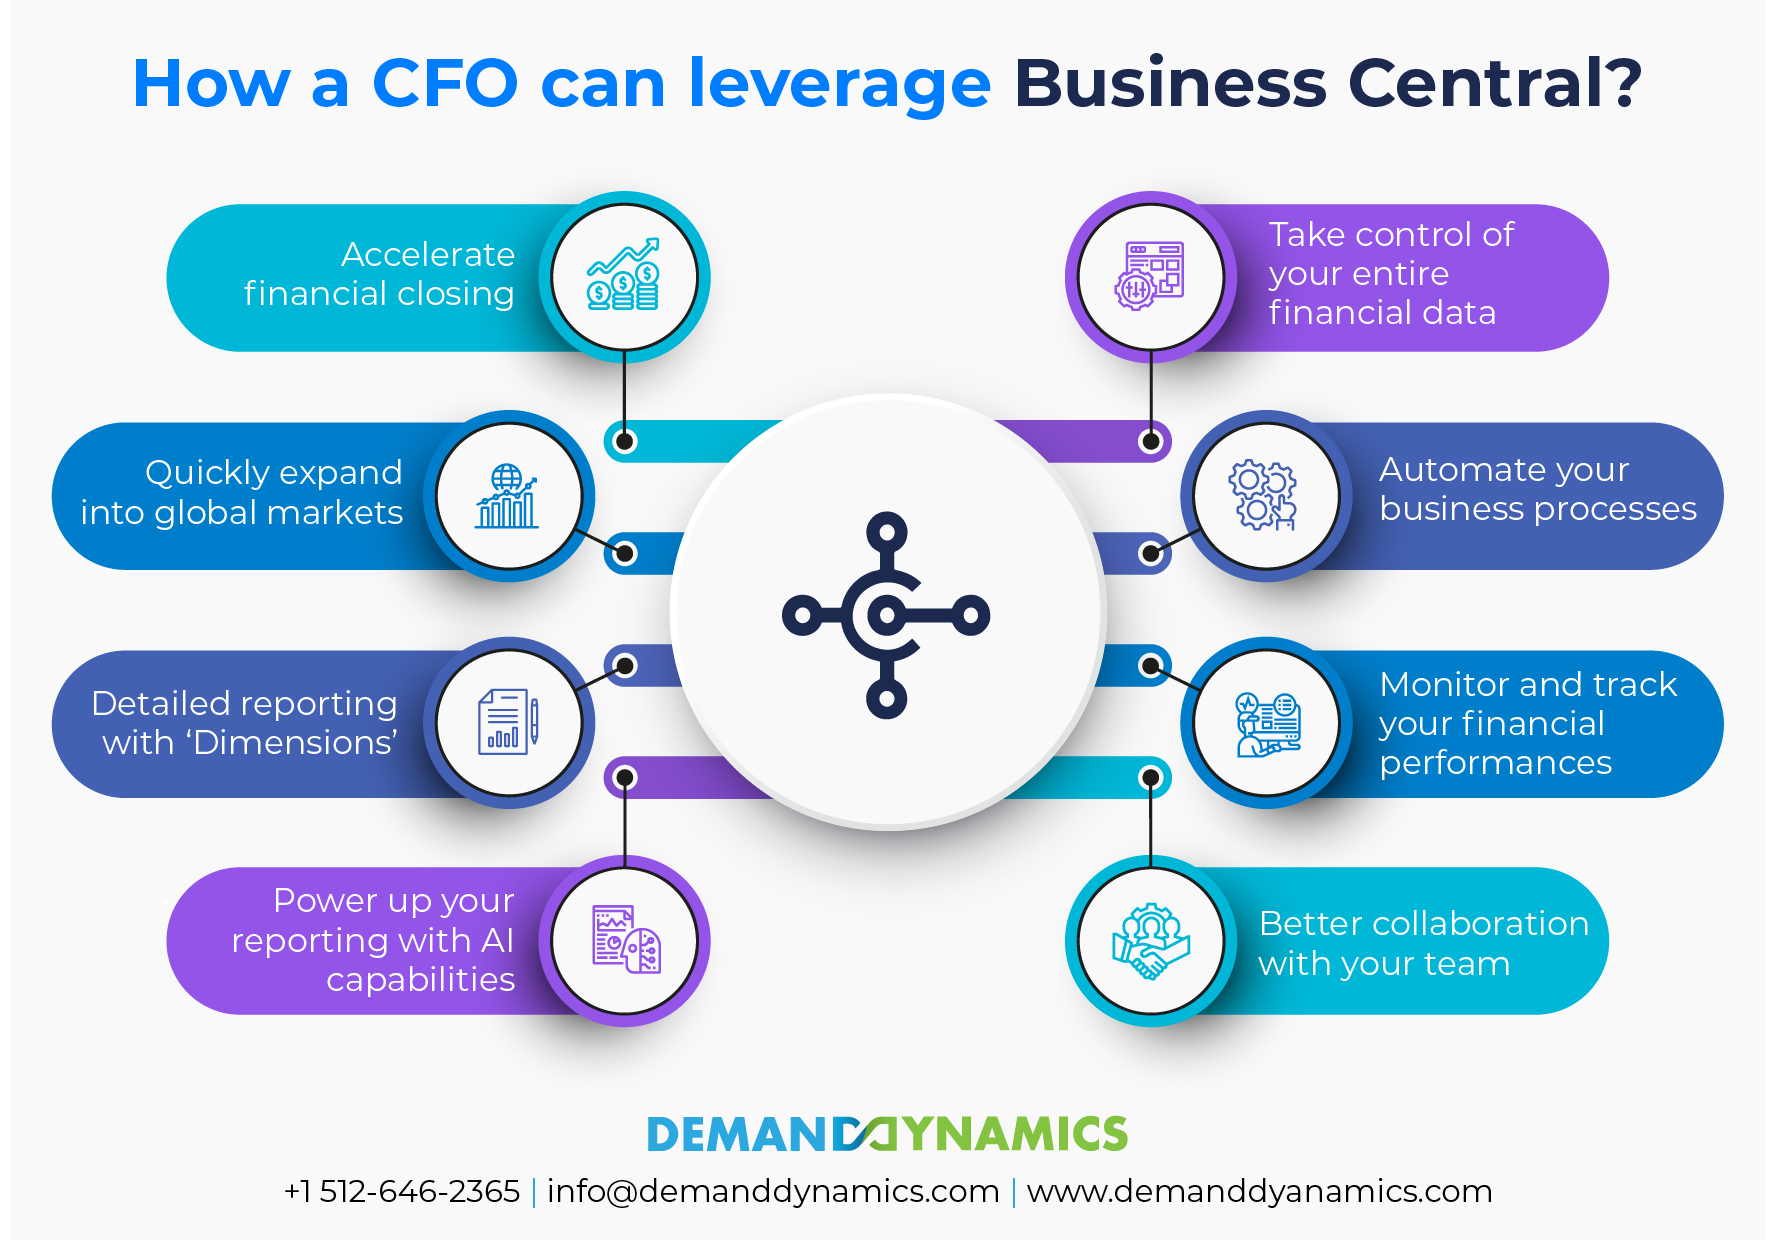 How Can CFOs Leverage Microsoft Dynamics 365 Business Central Capabilities?